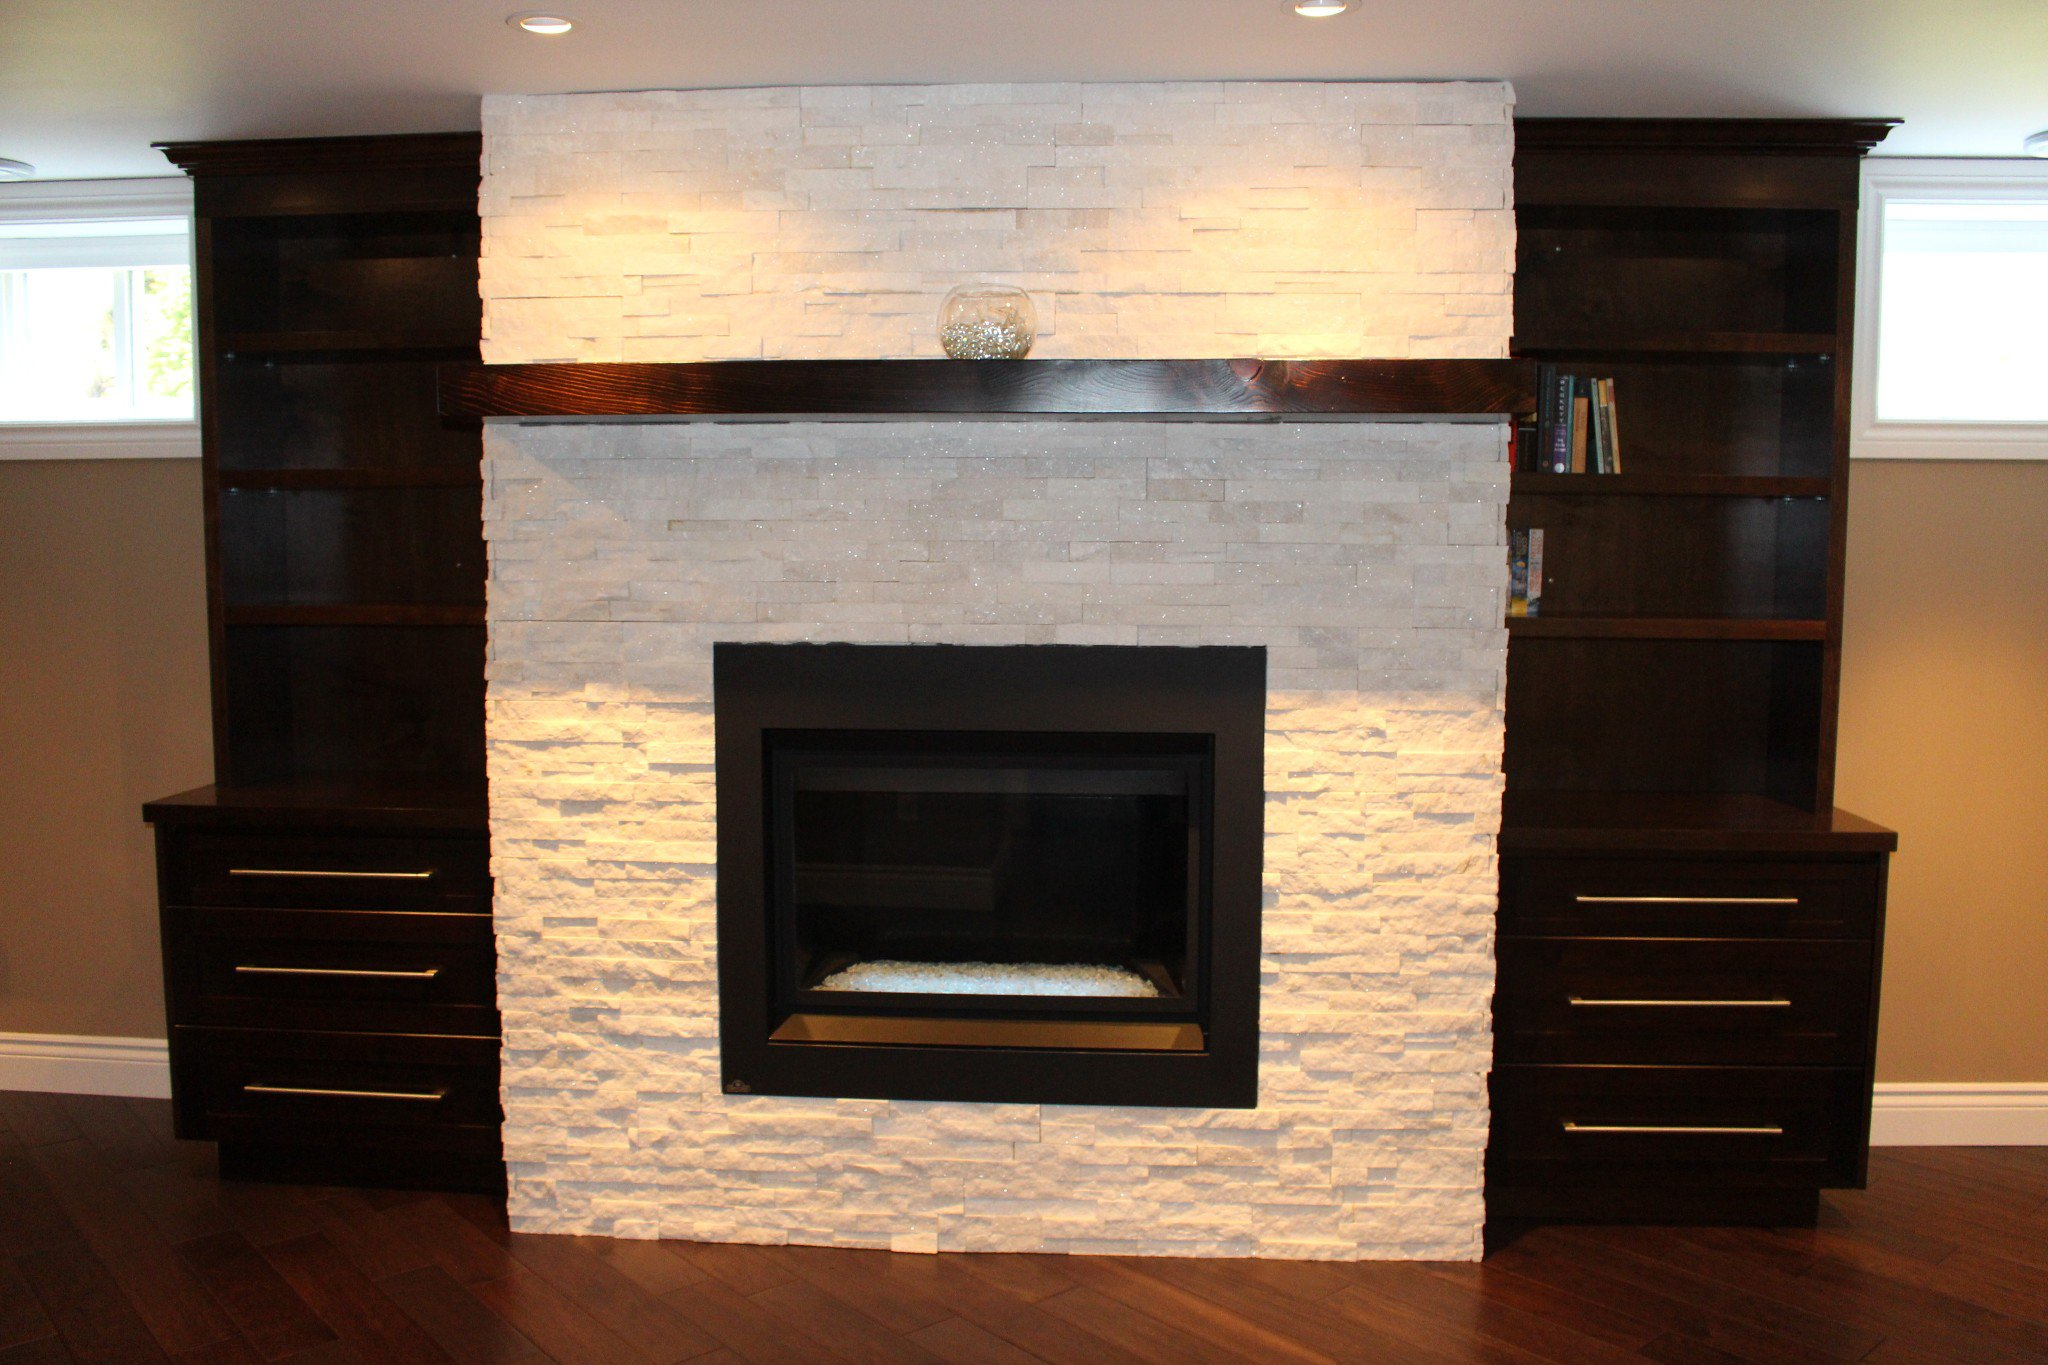 Photo 29: Photos: 751 Spragge Crescent in Cobourg: Residential Detached for sale : MLS®# 1291056